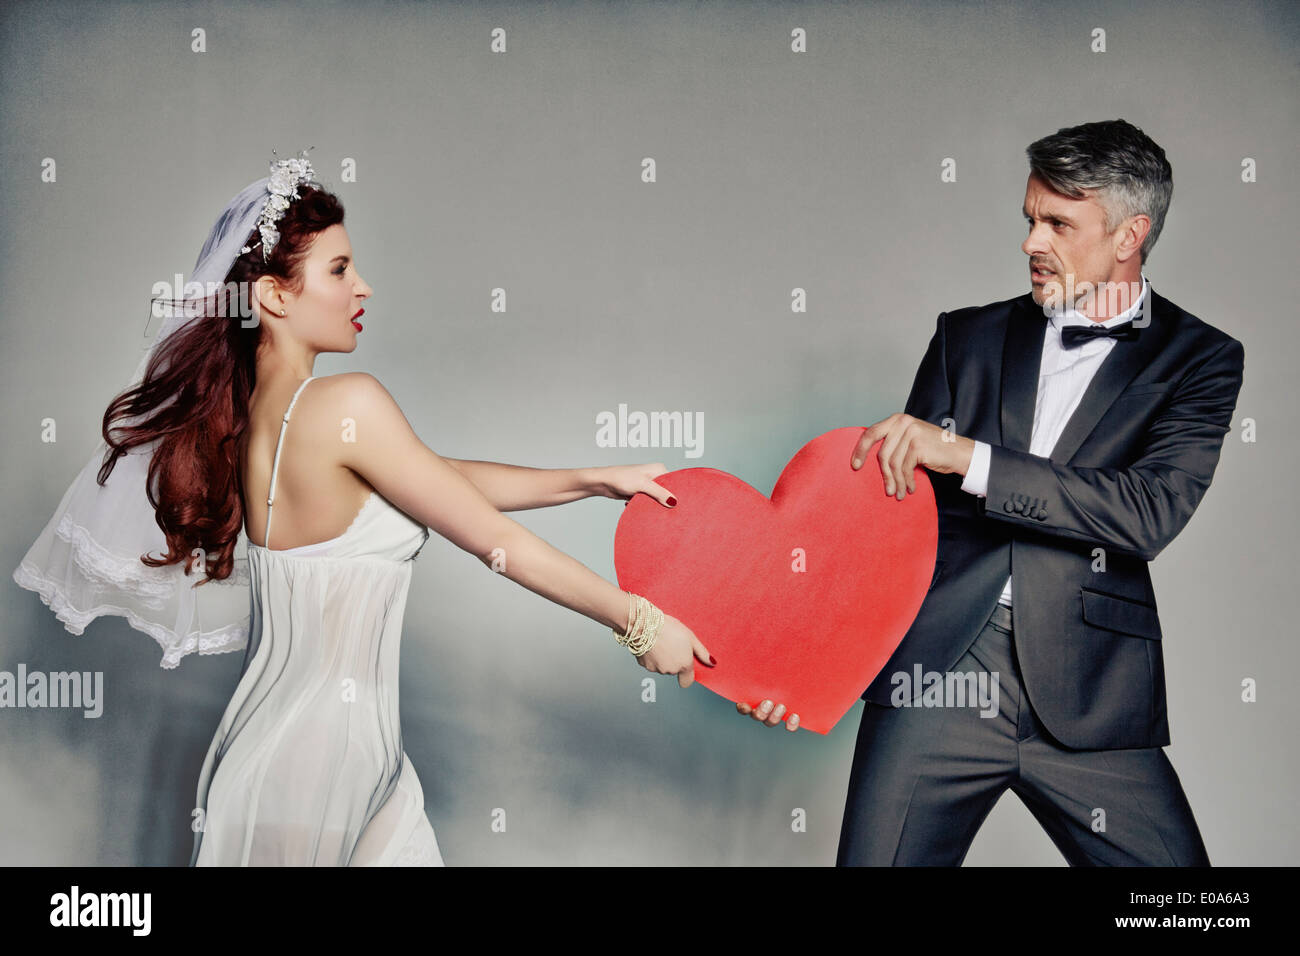 Bride and bridegroom fighting over heart - Stock Image